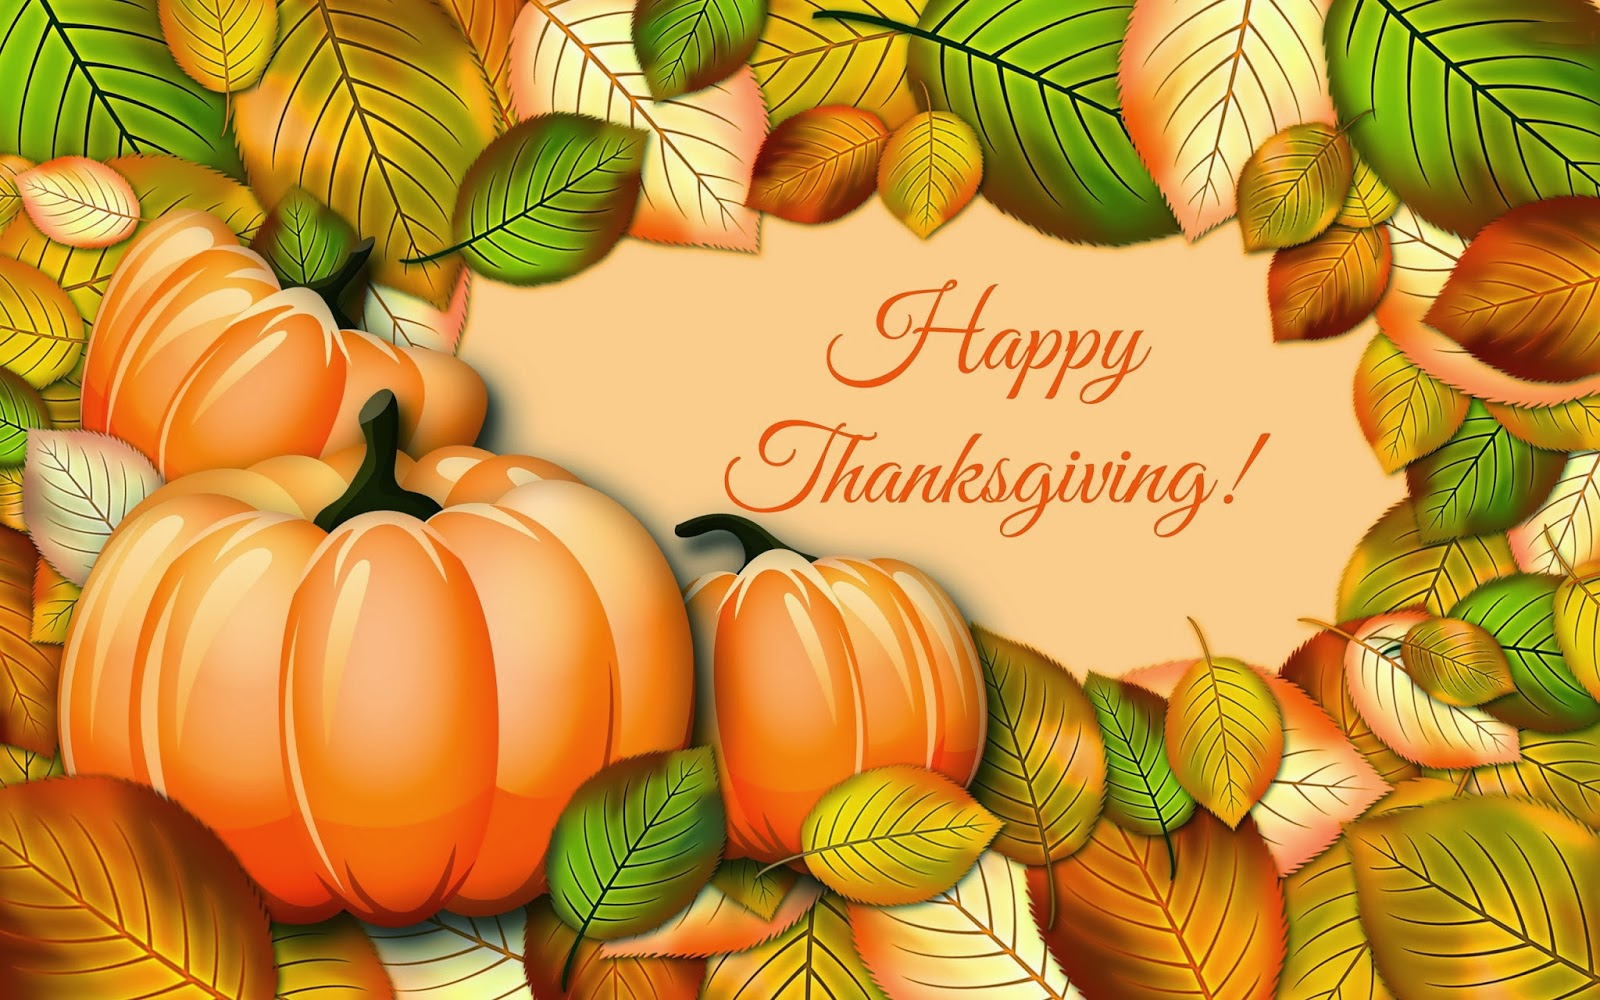 happy thanksgivinghd wallpapers - photo #39